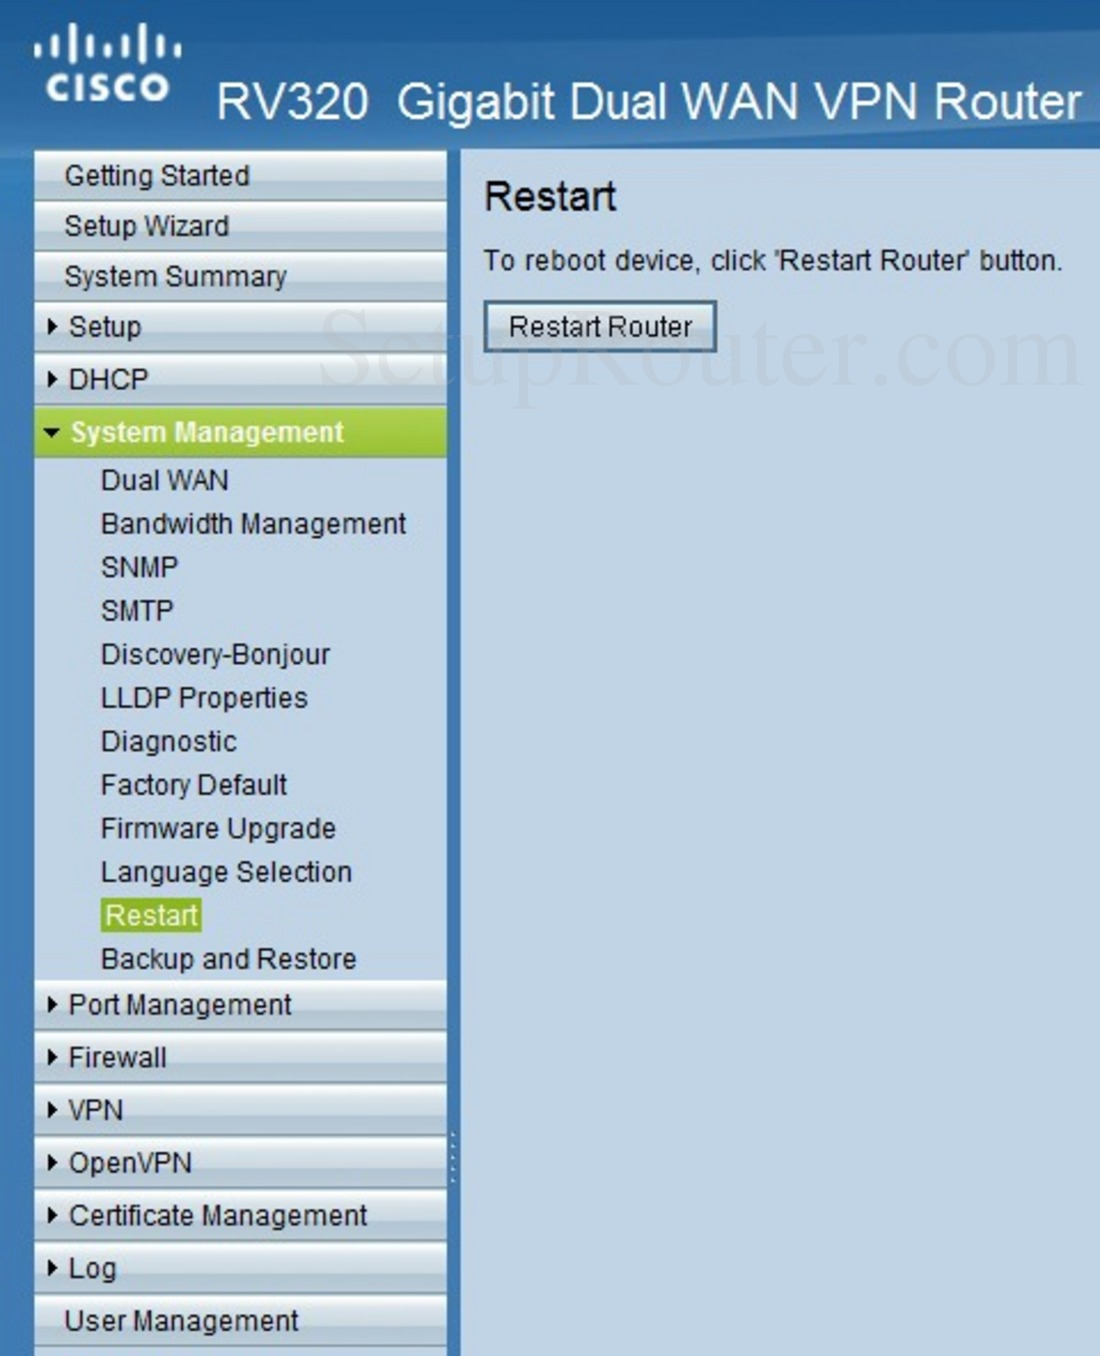 How To Reboot A Cisco Router - Router Image Oakwoodclub Org